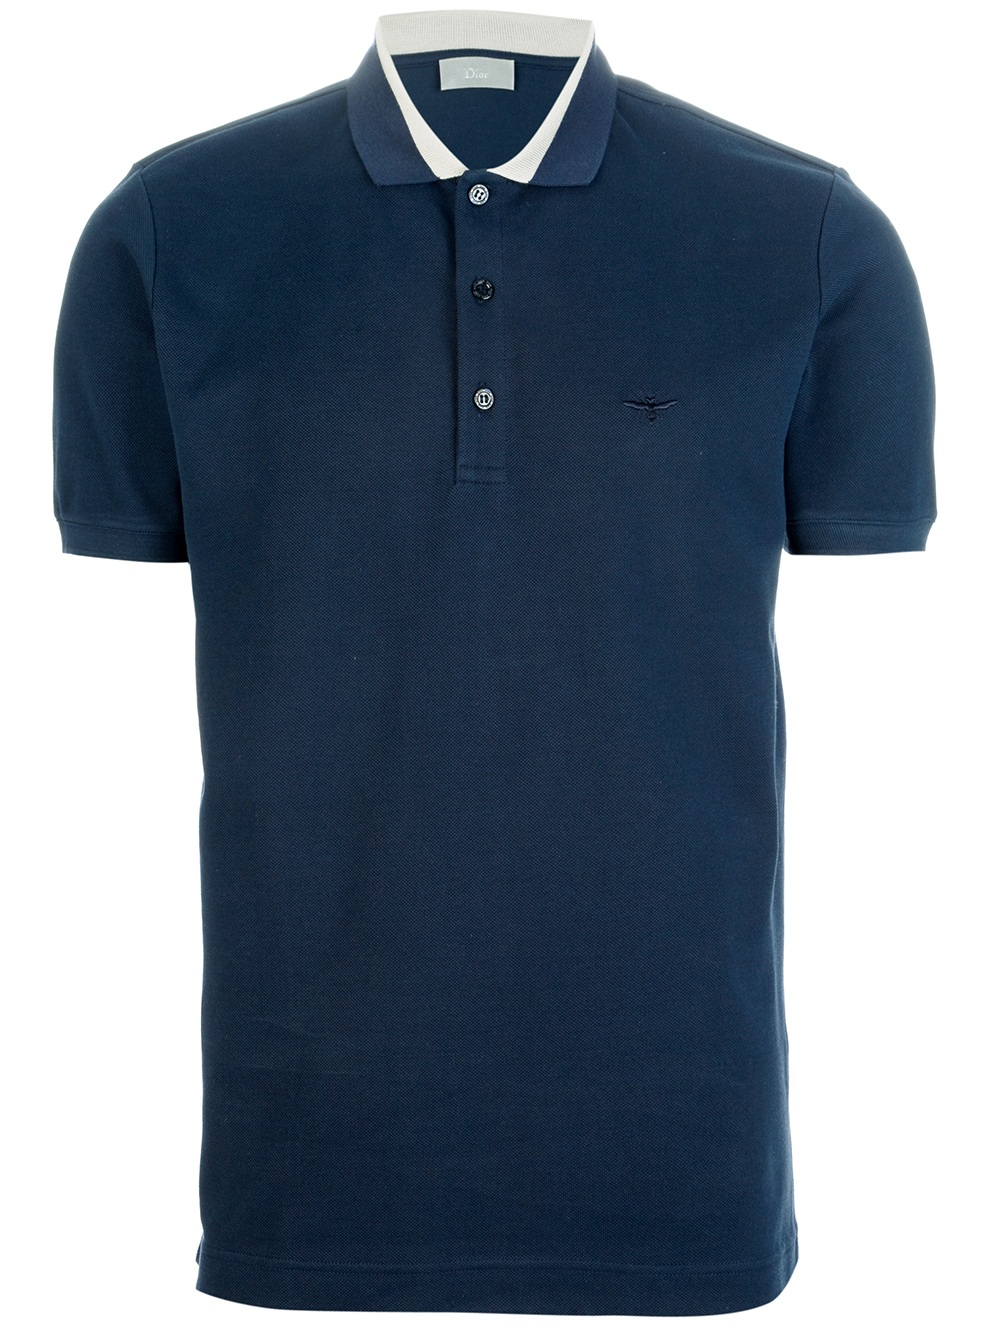 This Mens Relaxed-Fit Cotton Pique Polo Shirt is ideal for spring and summer. Made from % cotton, polo has a relaxed fit with a 2-button placket and side-slit humorrmundiall.ga: $